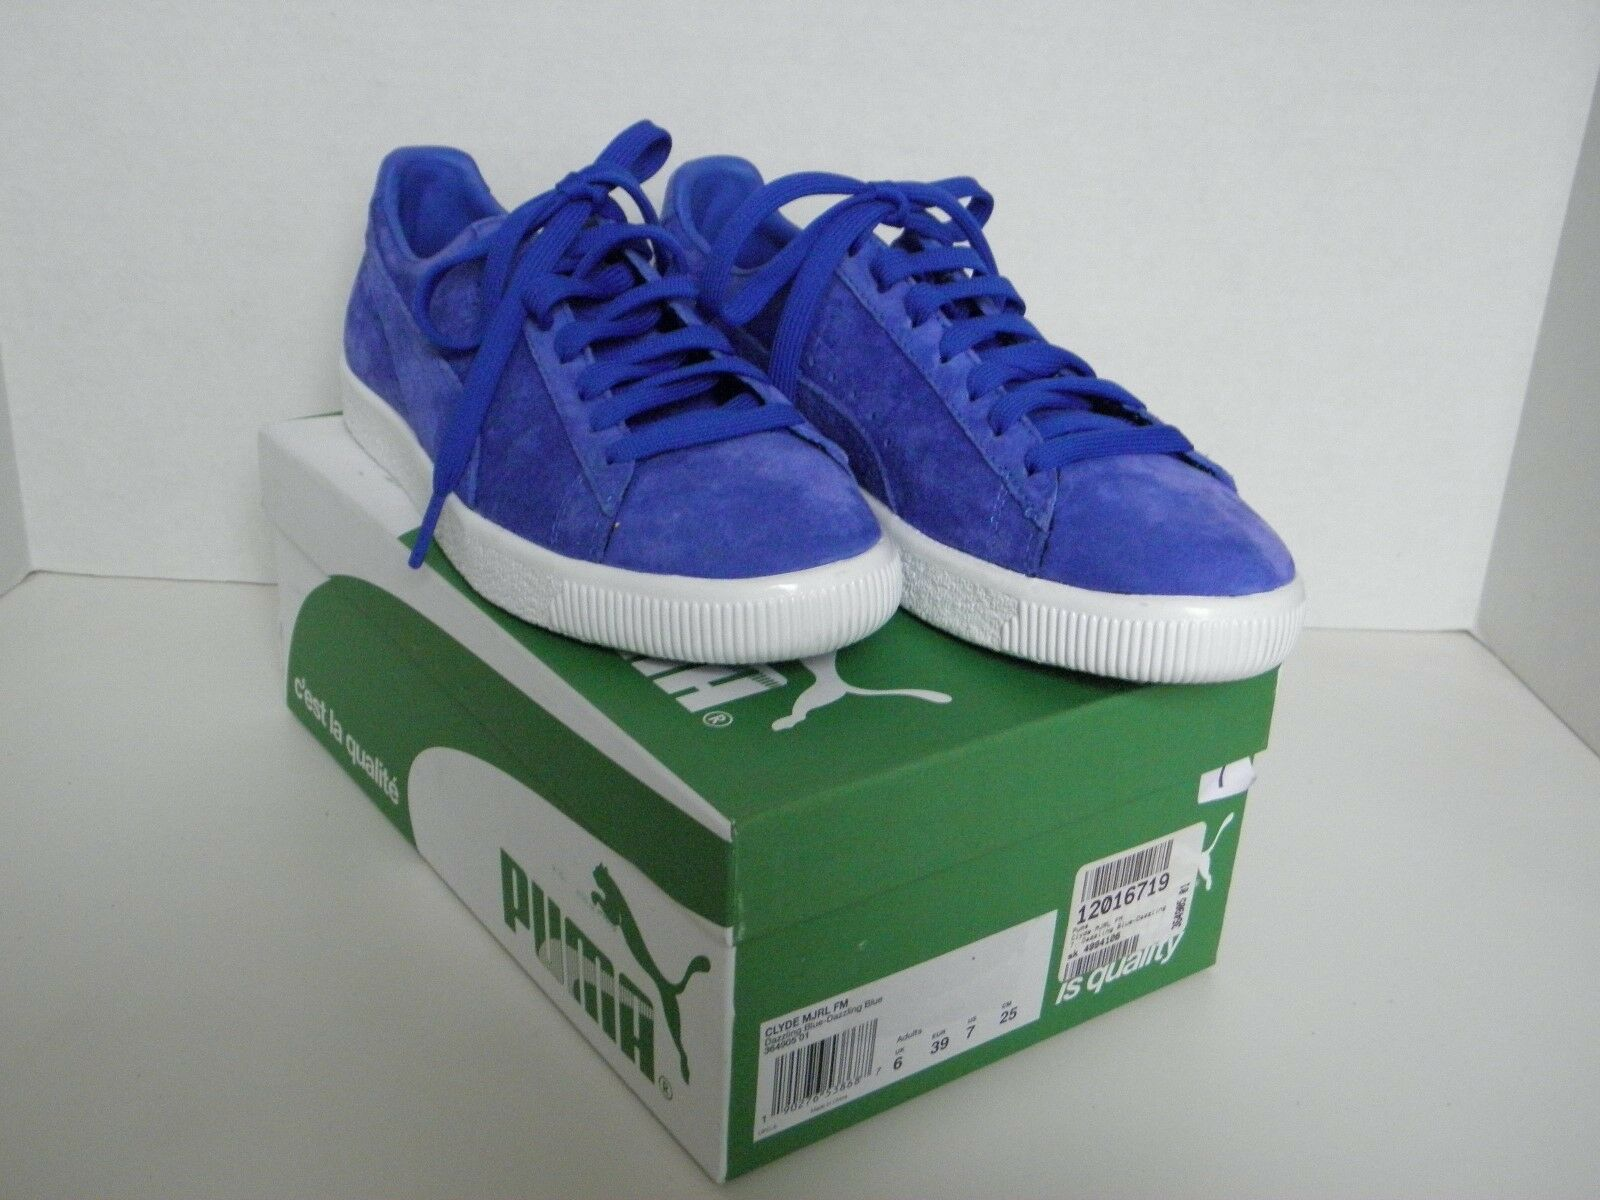 Puma Clyde MJRL FM, Dazzling bluee Dazzling bluee, Size 7, Athletic Sneaker shoes